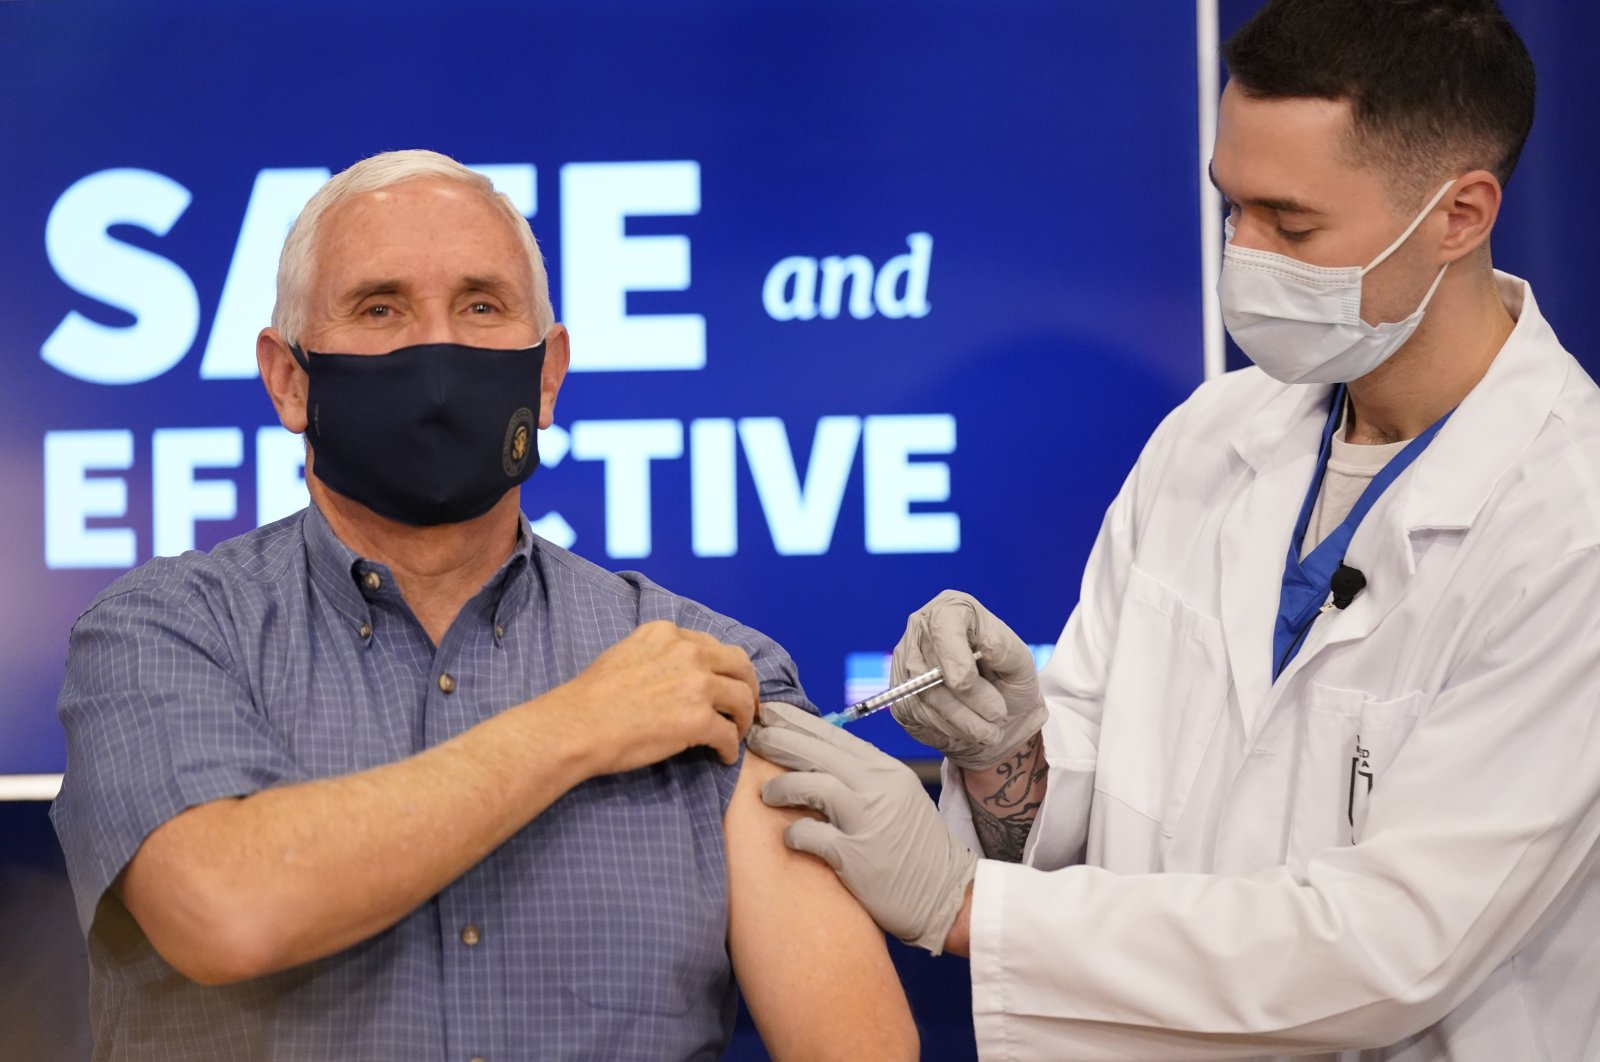 Vice President Mike Pence receives a Pfizer-BioNTech COVID-19 vaccine shot at the Eisenhower Executive Office Building on the White House complex in Washington D.C., Dec. 18, 2020. (AP Photo)